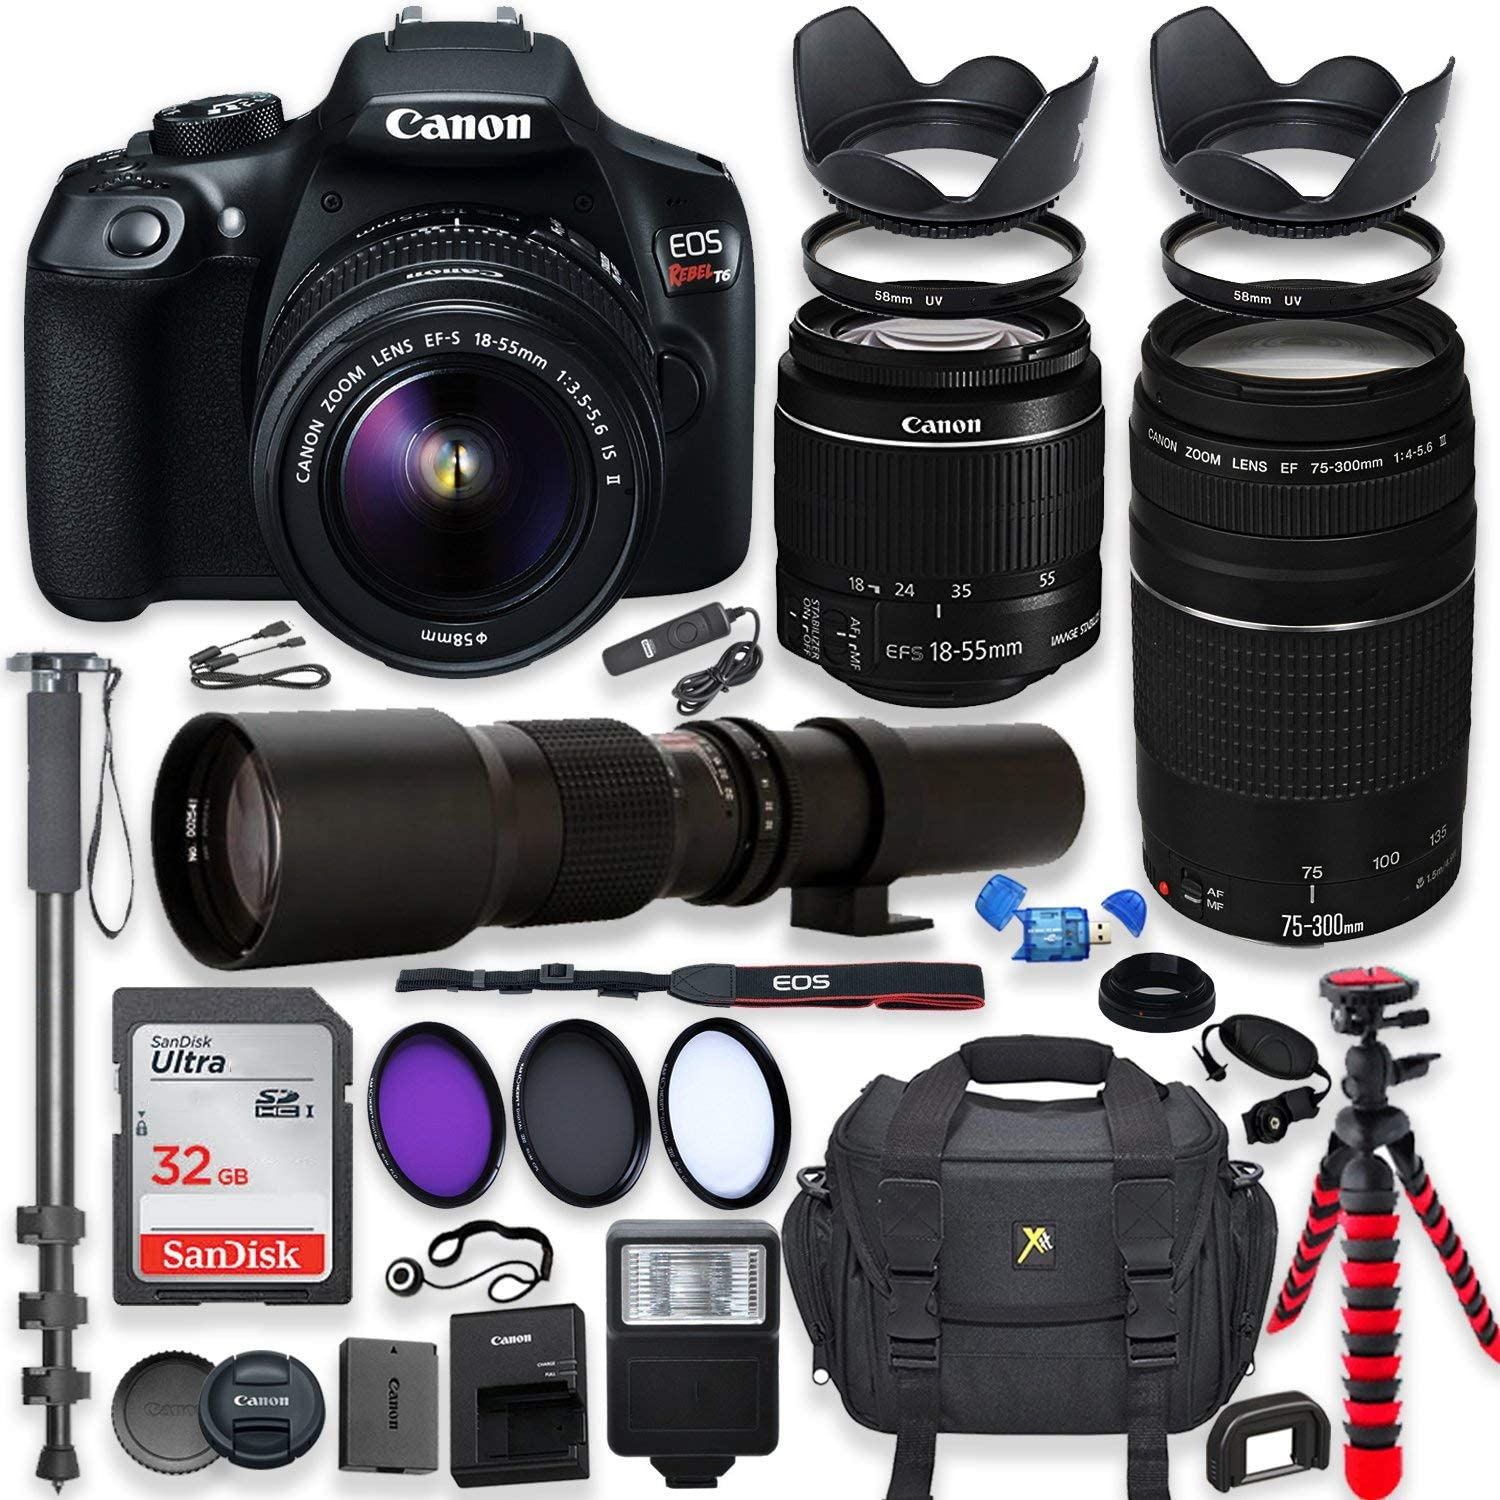 Canon EOS Rebel T6 DSLR Camera with 18-55mm is II Lens Bundle + Canon EF 75-300mm f/4-5.6 III Lens and 500mm Preset Lens + 32GB Memory + Filters + Monopod + Spider Tripod + Professional Bundle